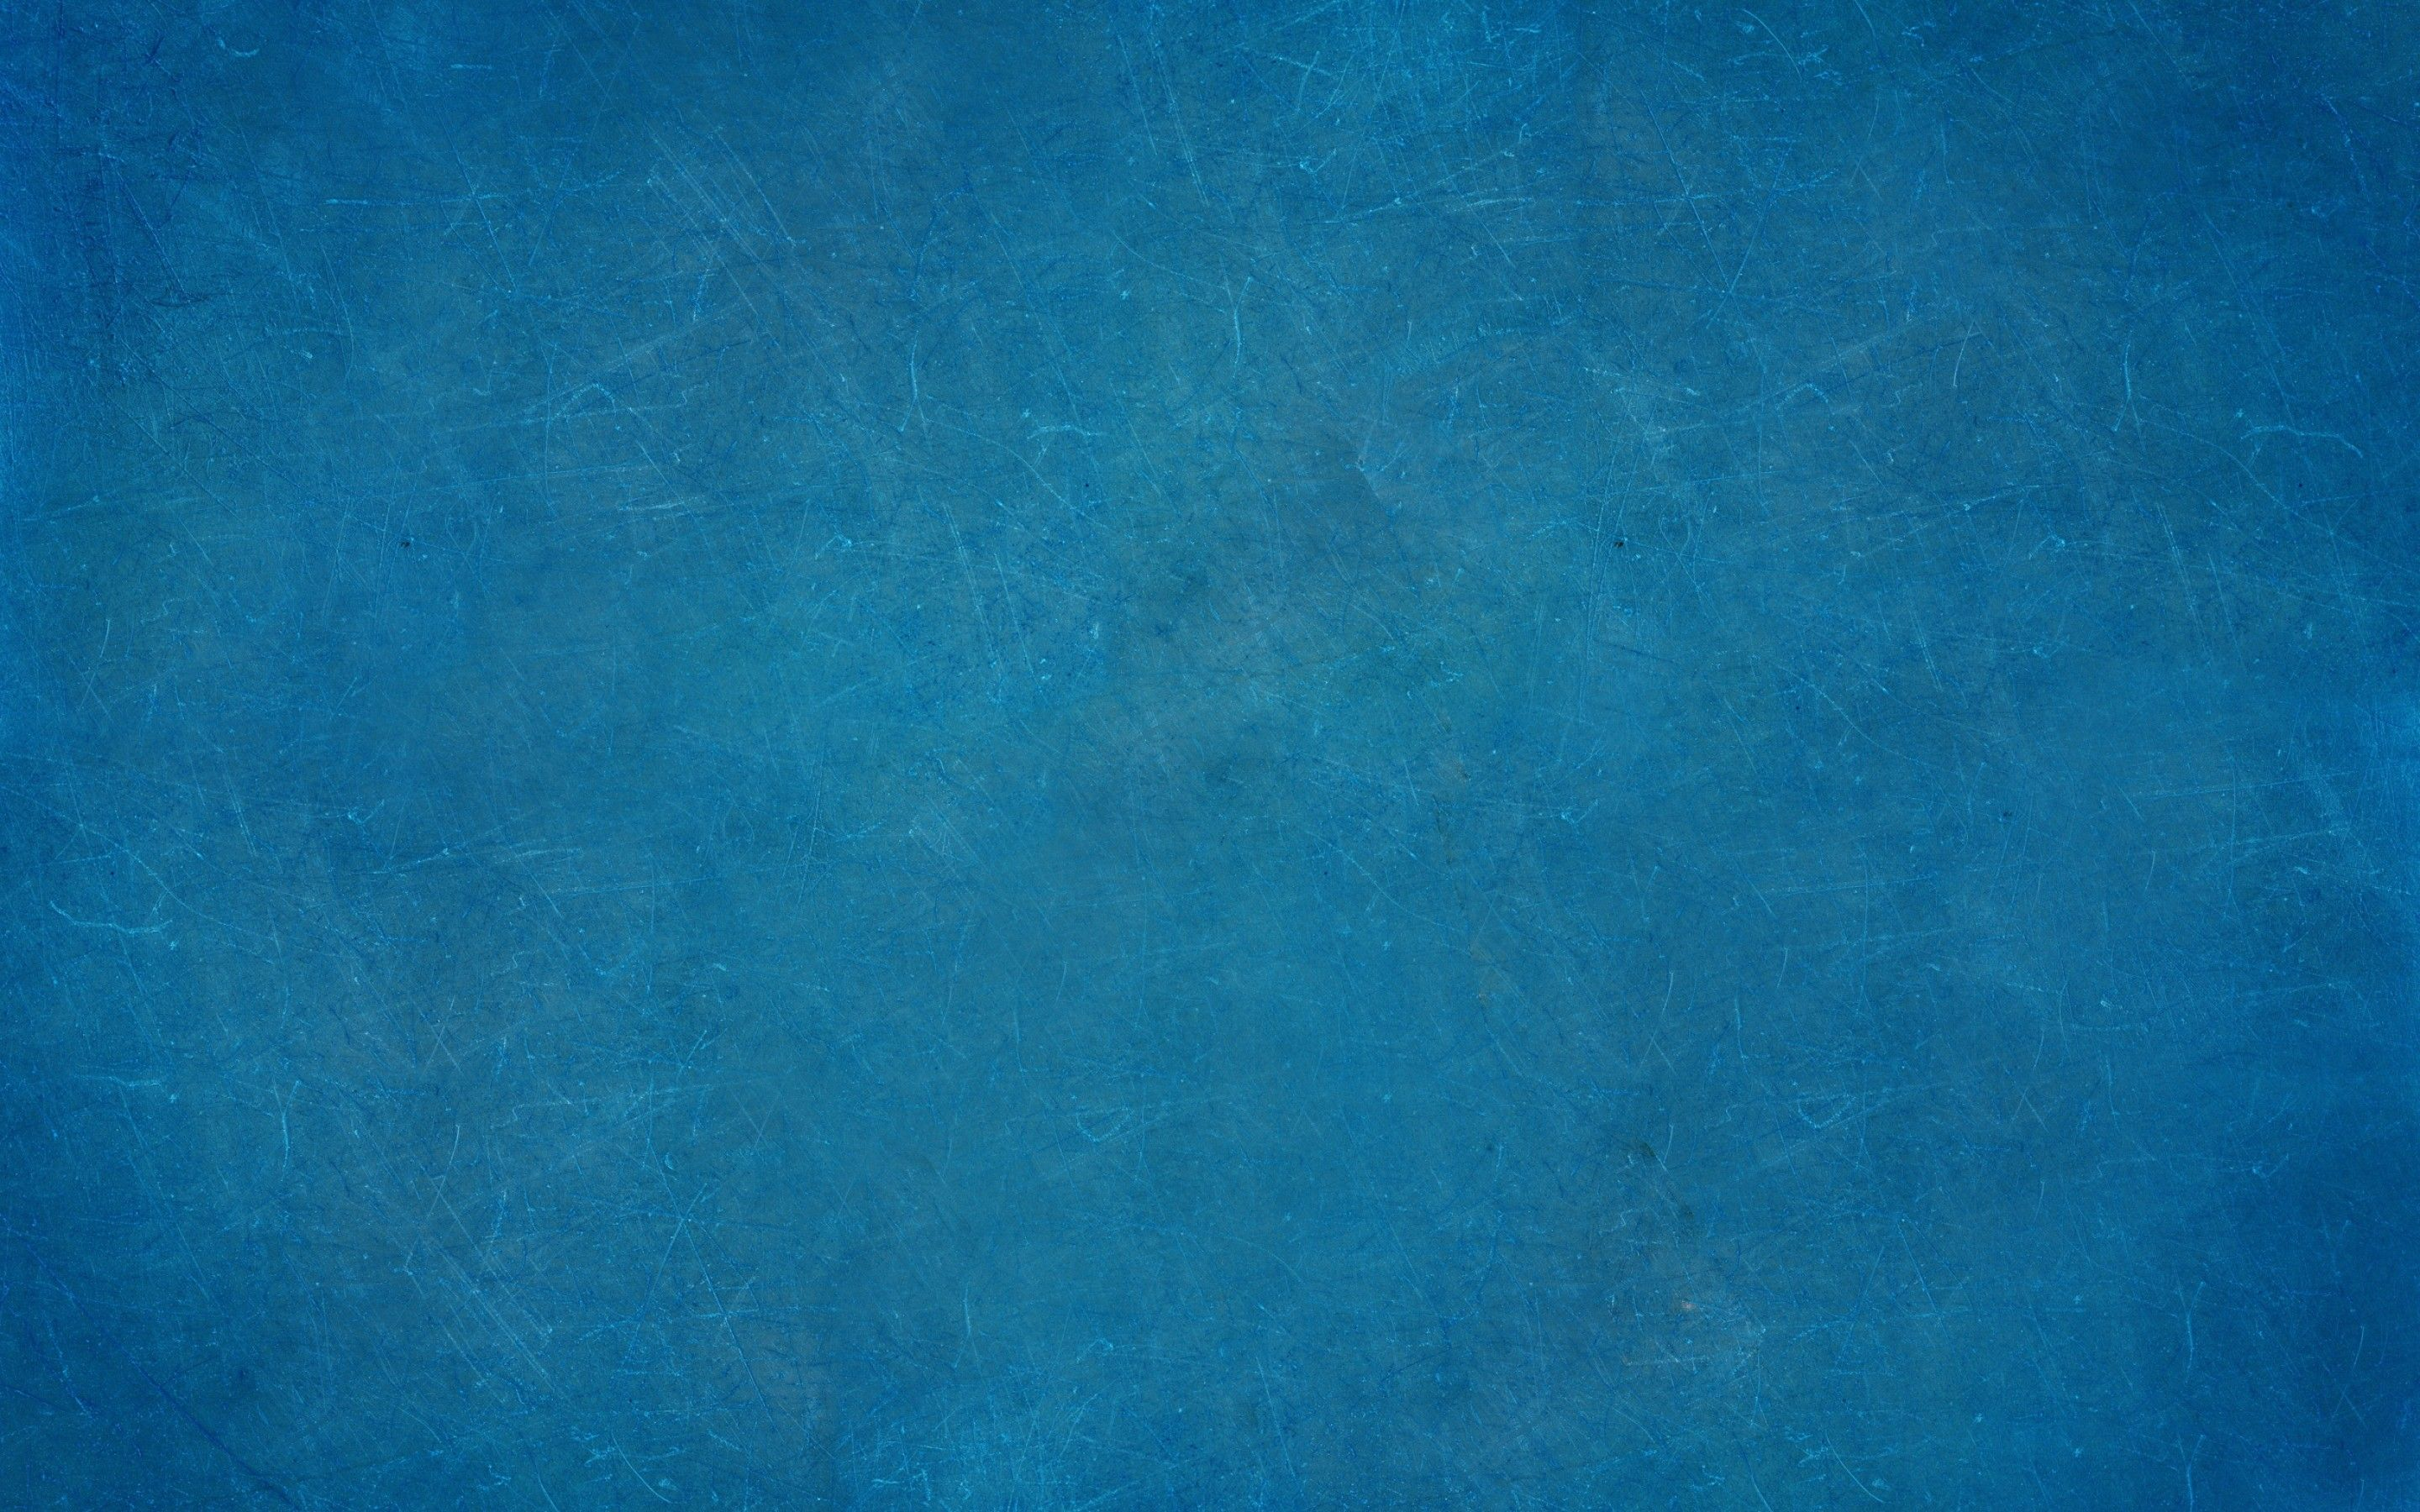 Blue Texture Wallpapers - Top Free Blue Texture Backgrounds -  WallpaperAccess